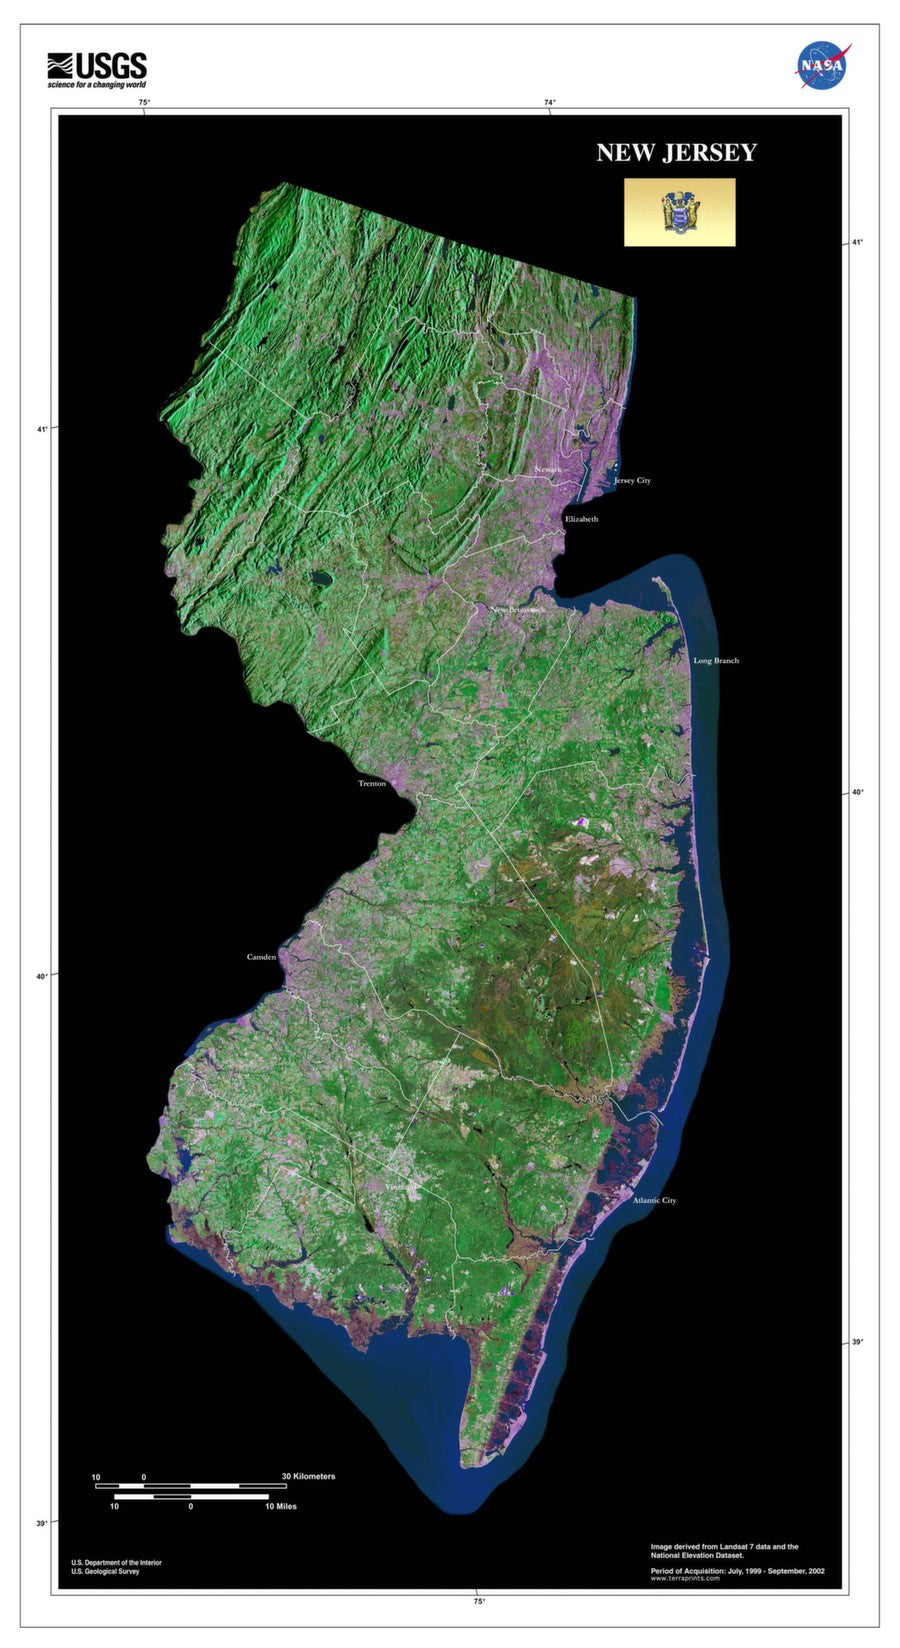 New Jersey Satellite Imagery State Map Poster by TerraPrints.com. Available in multiple sizes with free shipping in the USA.